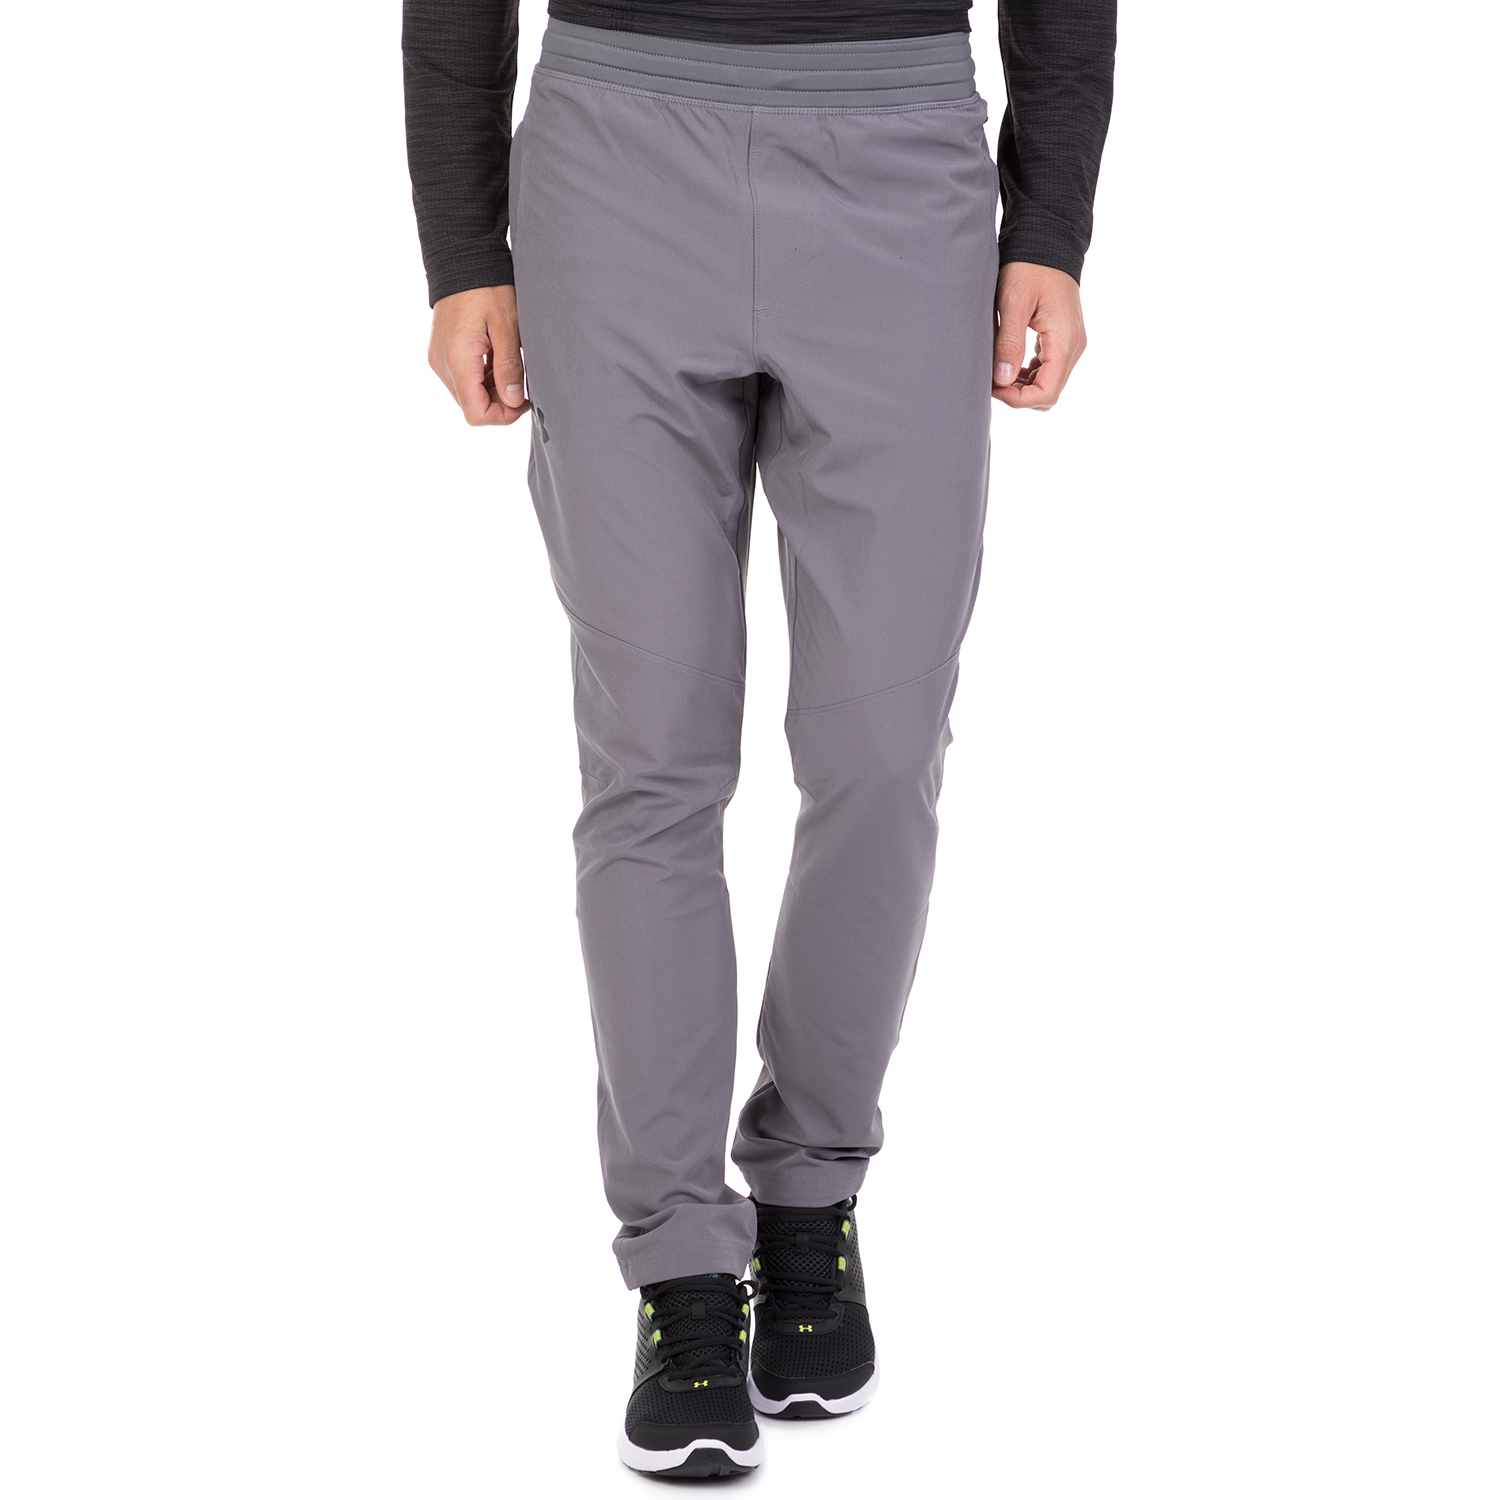 5fe6a66275e UNDER ARMOUR - Ανδρικό παντελόνι φόρμας UNDER ARMOUR WG WOVEN γκρι